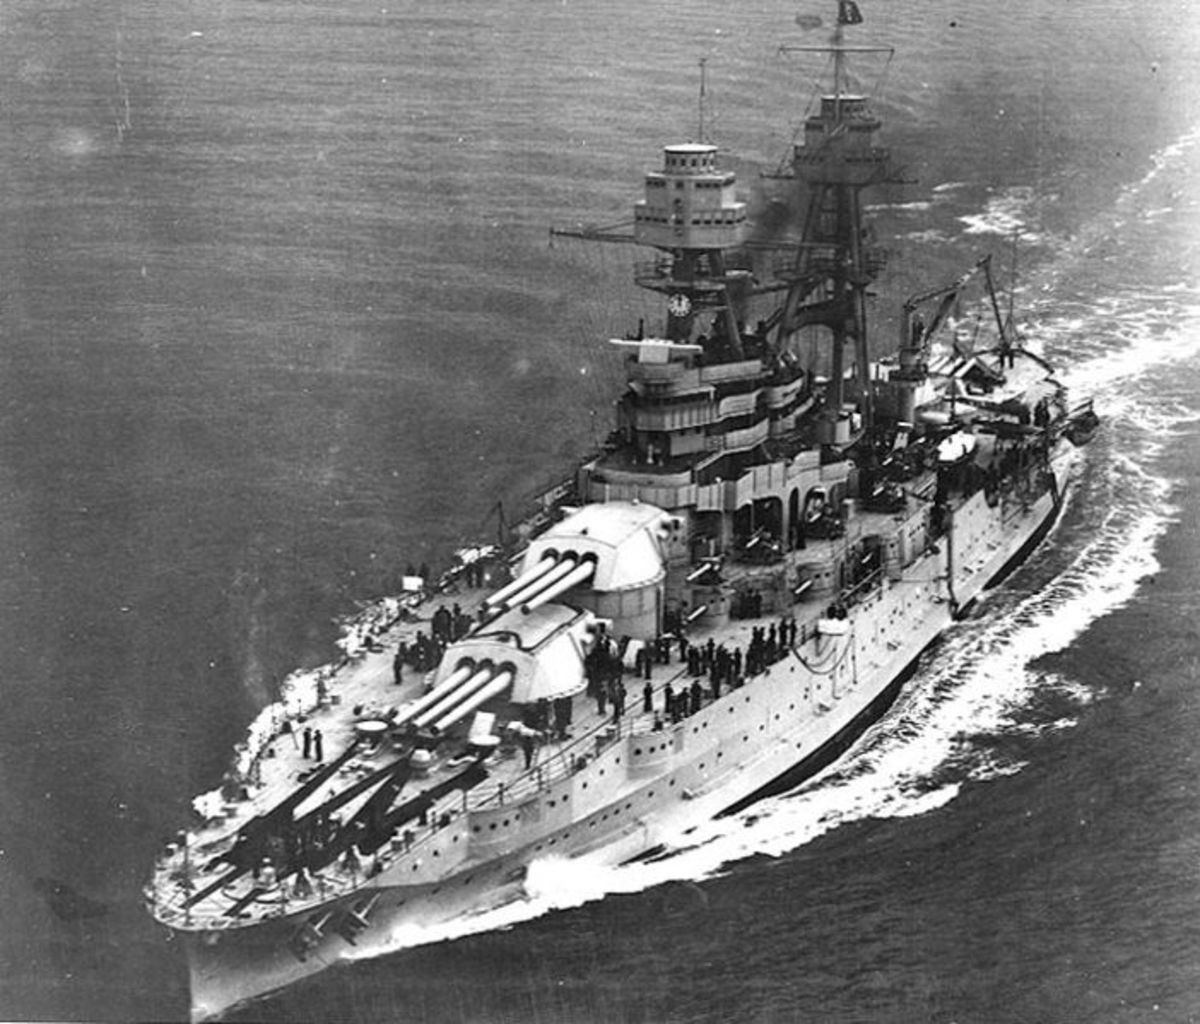 The U.S.S. Arizona Battleship under way with President Herbert Hoover aboard.